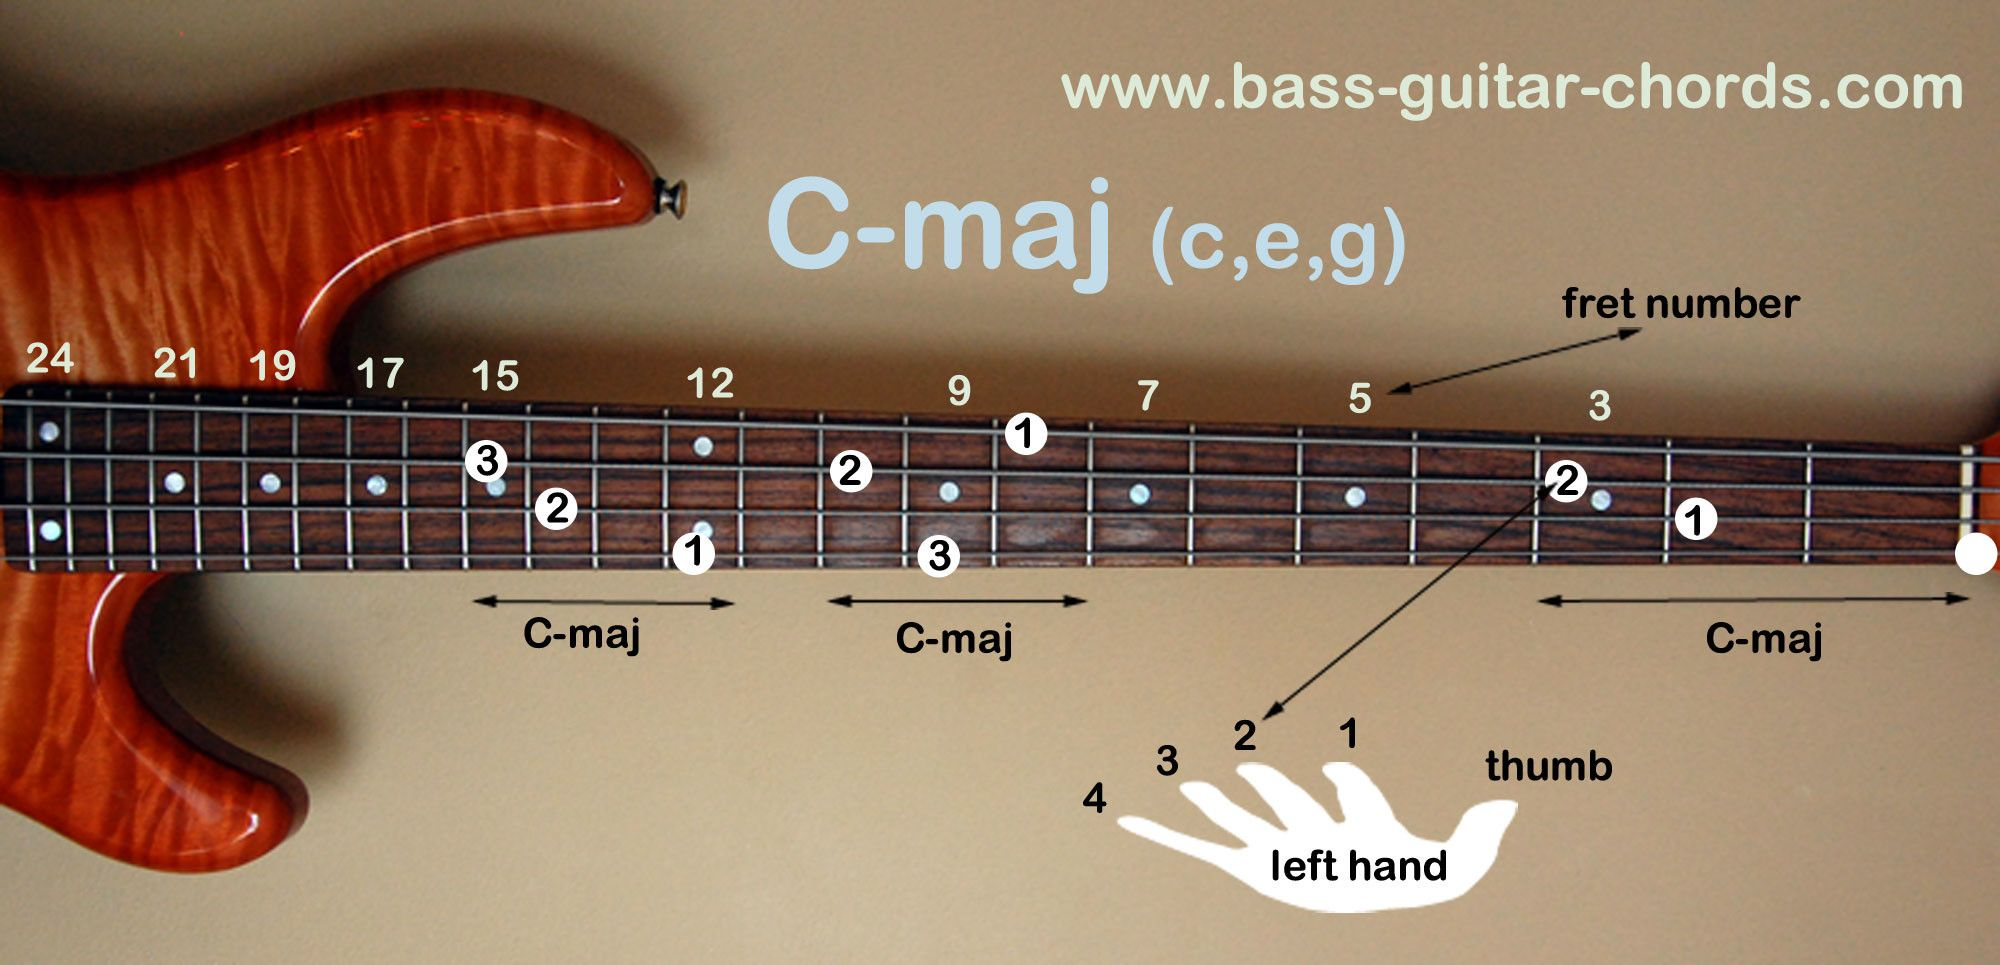 Bass Guitar Chords Innovative School Of Bass Playing Bass Lessons Bass Guitar Lesson Learn To Play Bass Guitar Online Bass G Bass Guitar Ukulele Chords